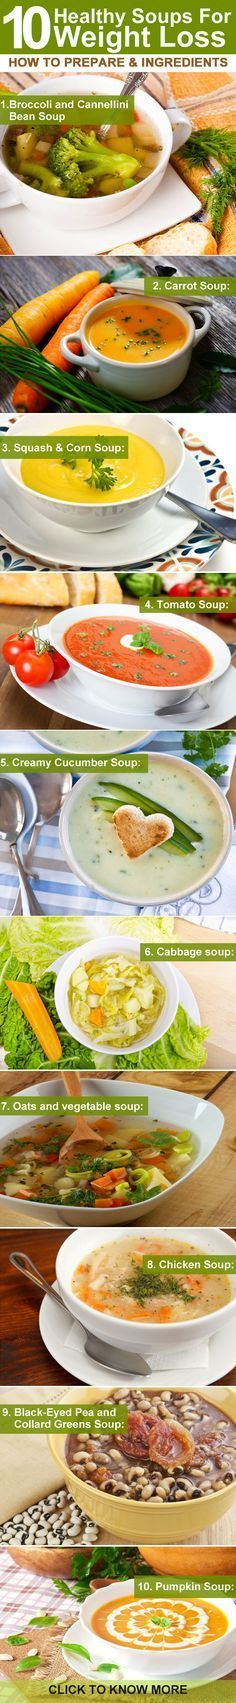 TOP 10 HEALTHY SOUPS FOR WEIGHT LOSS!=